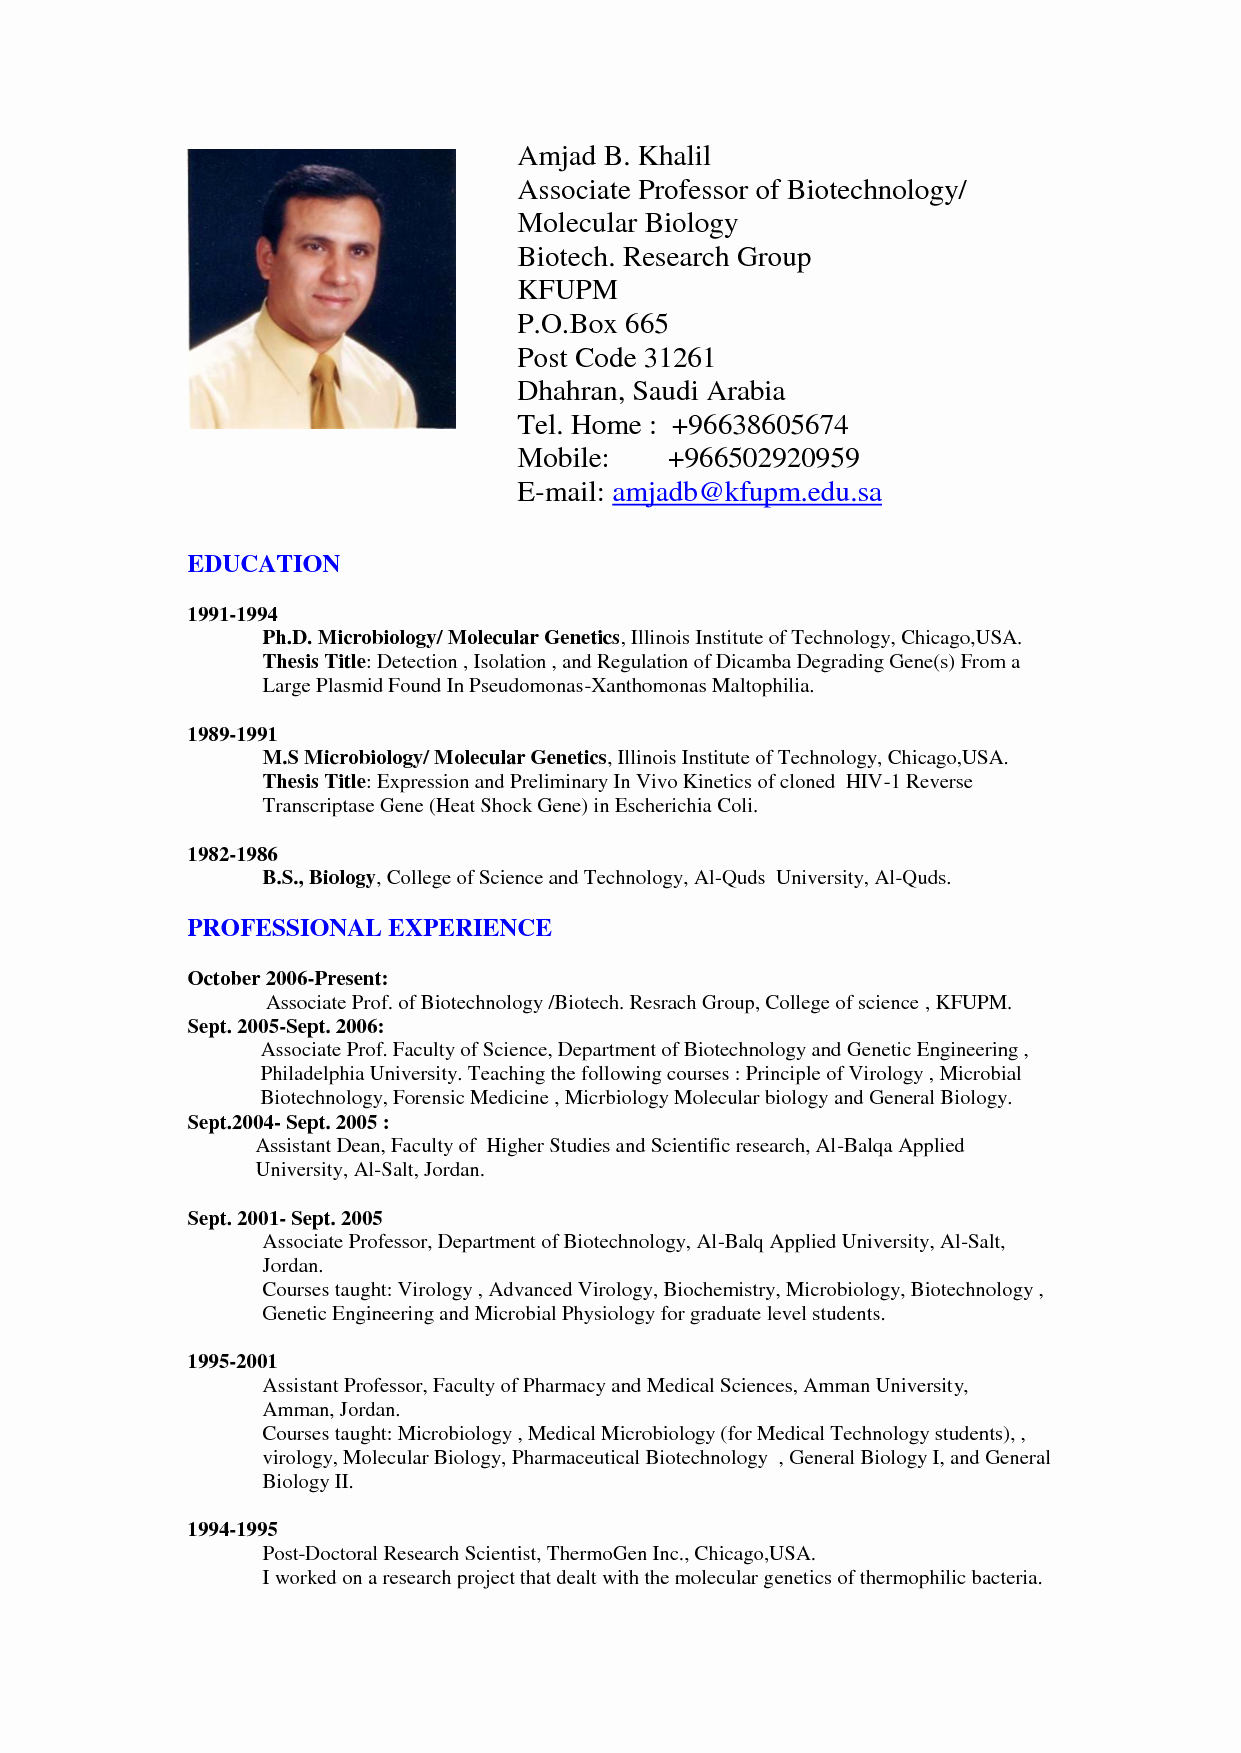 Professional Curriculum Vitae Template Download New Professional Resume format Doc